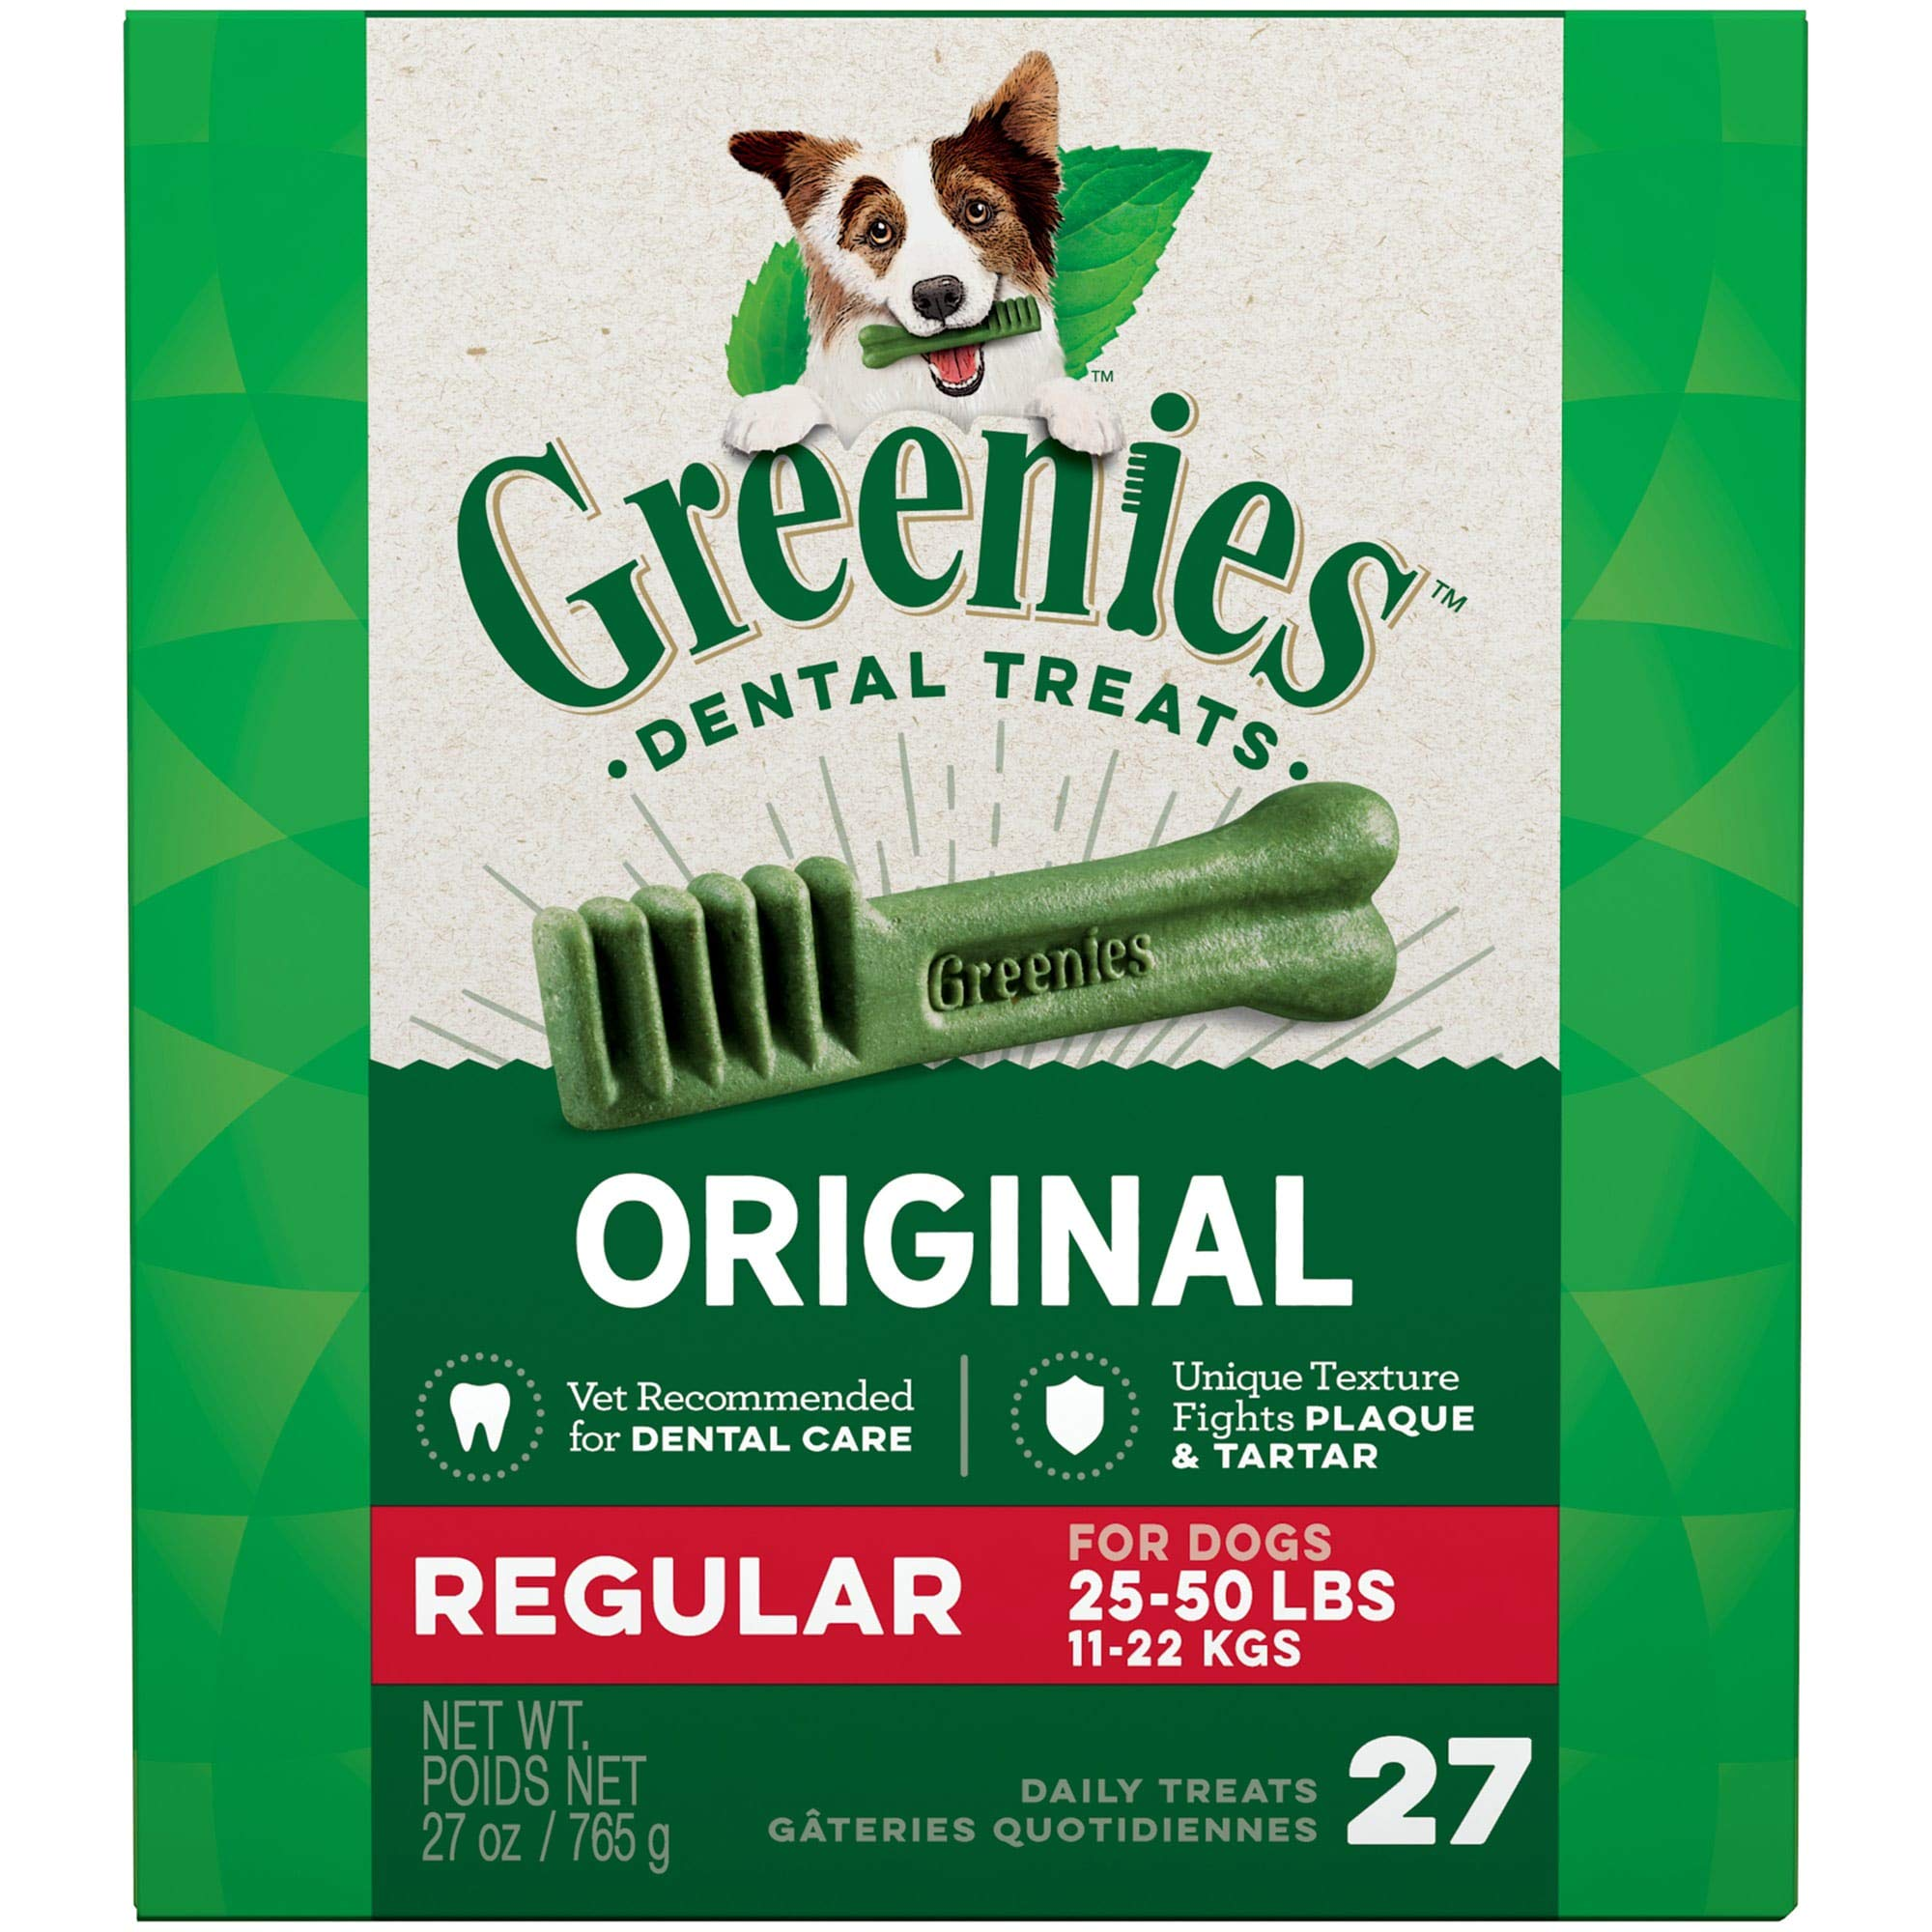 Greenies Original Regular Natural Dental Dog Treats (25 – 50lb. dogs)